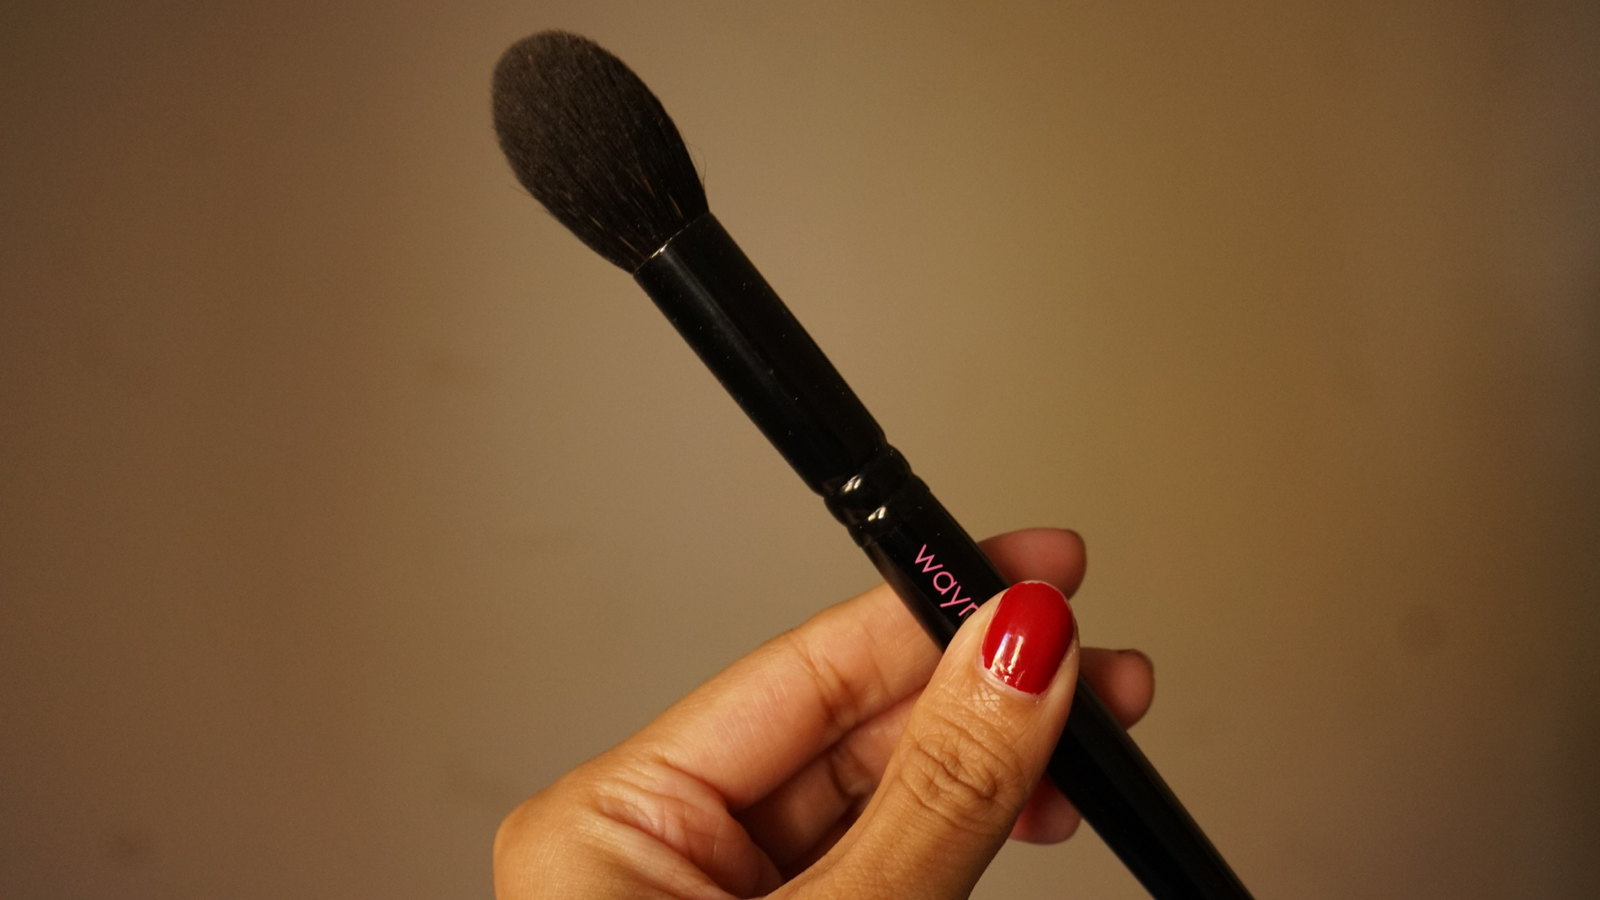 wayne goss brush 02 review girlandvanity.com